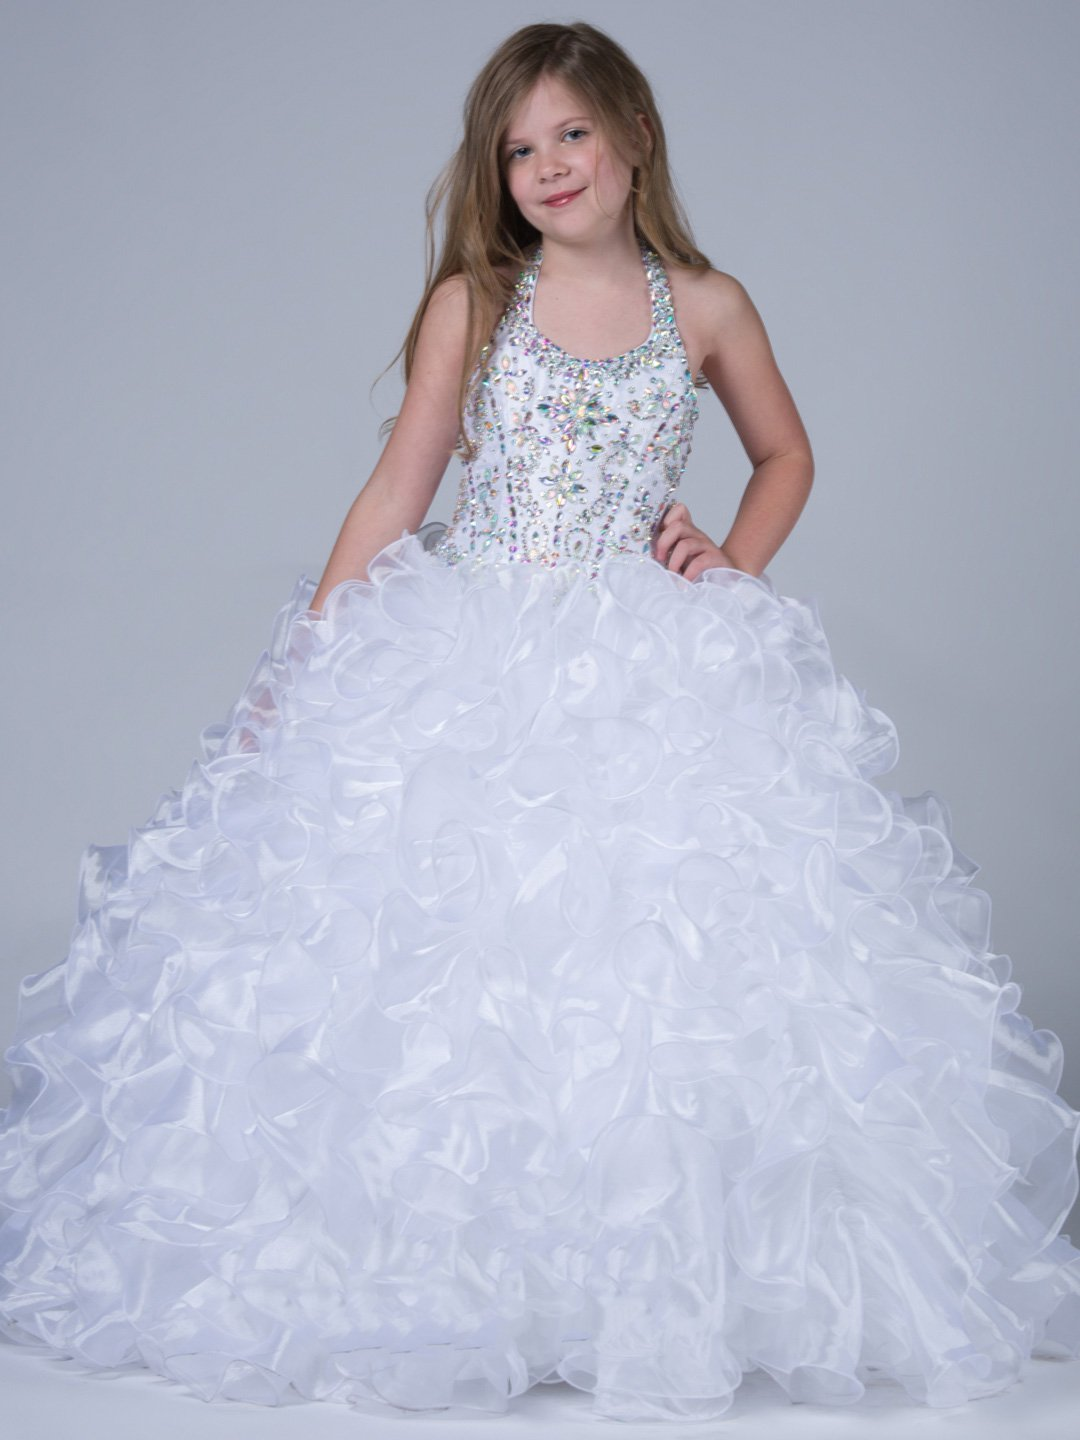 White pageant dress